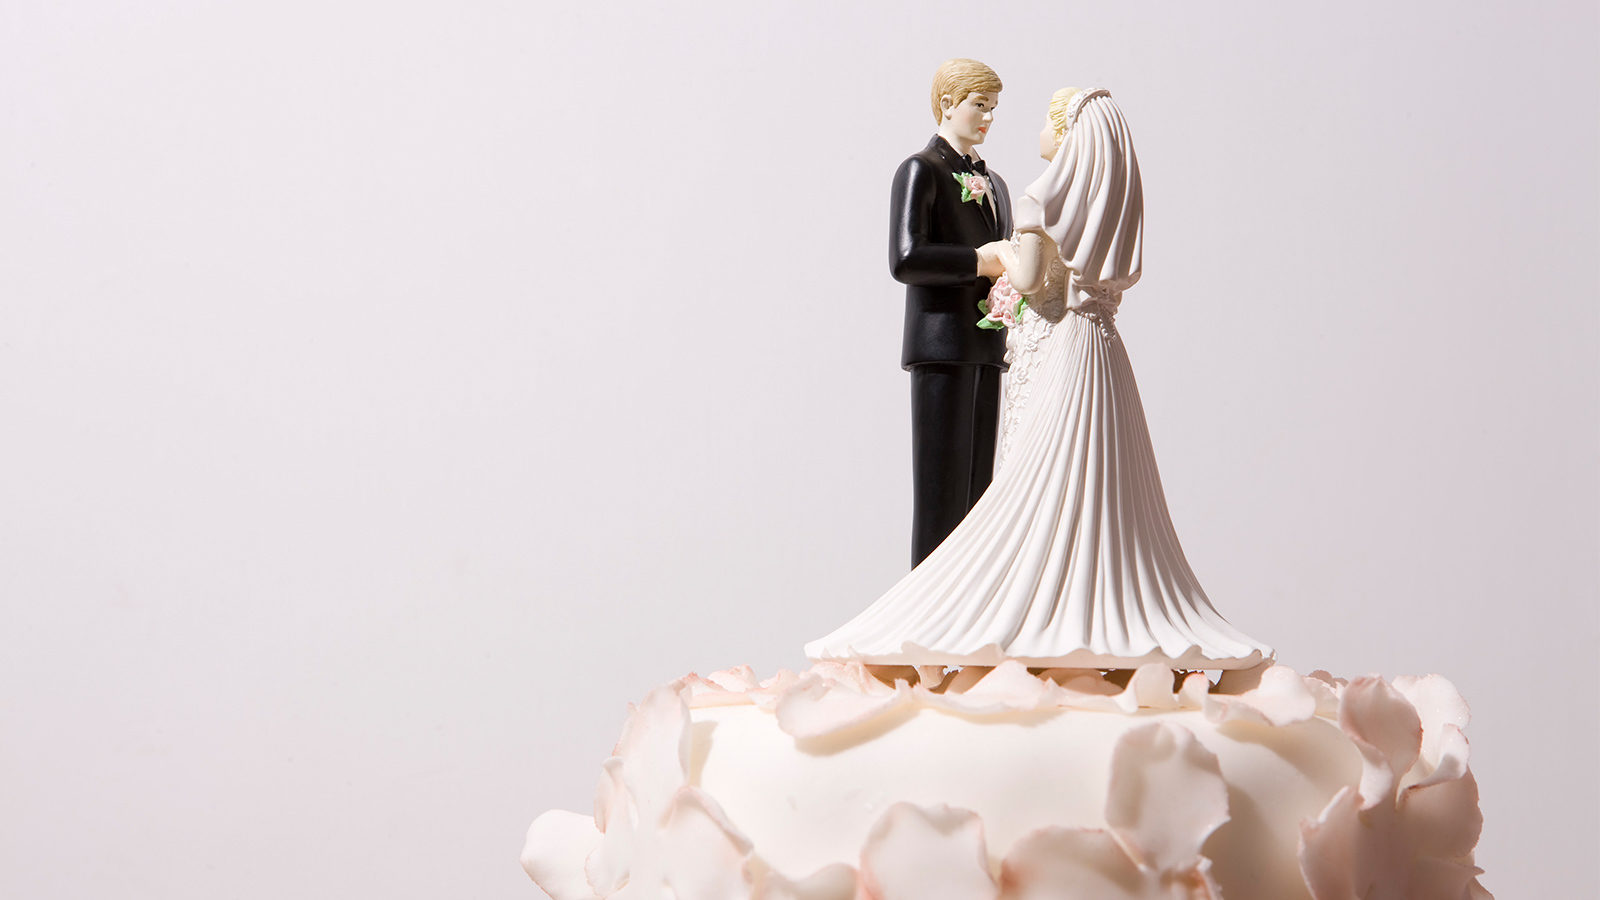 https://assets.slatergordon.com.au/images/Blog/_large2x/Blog-how-does-marriage-or-divorce-affect-my-will.jpg?mtime=20180709103731